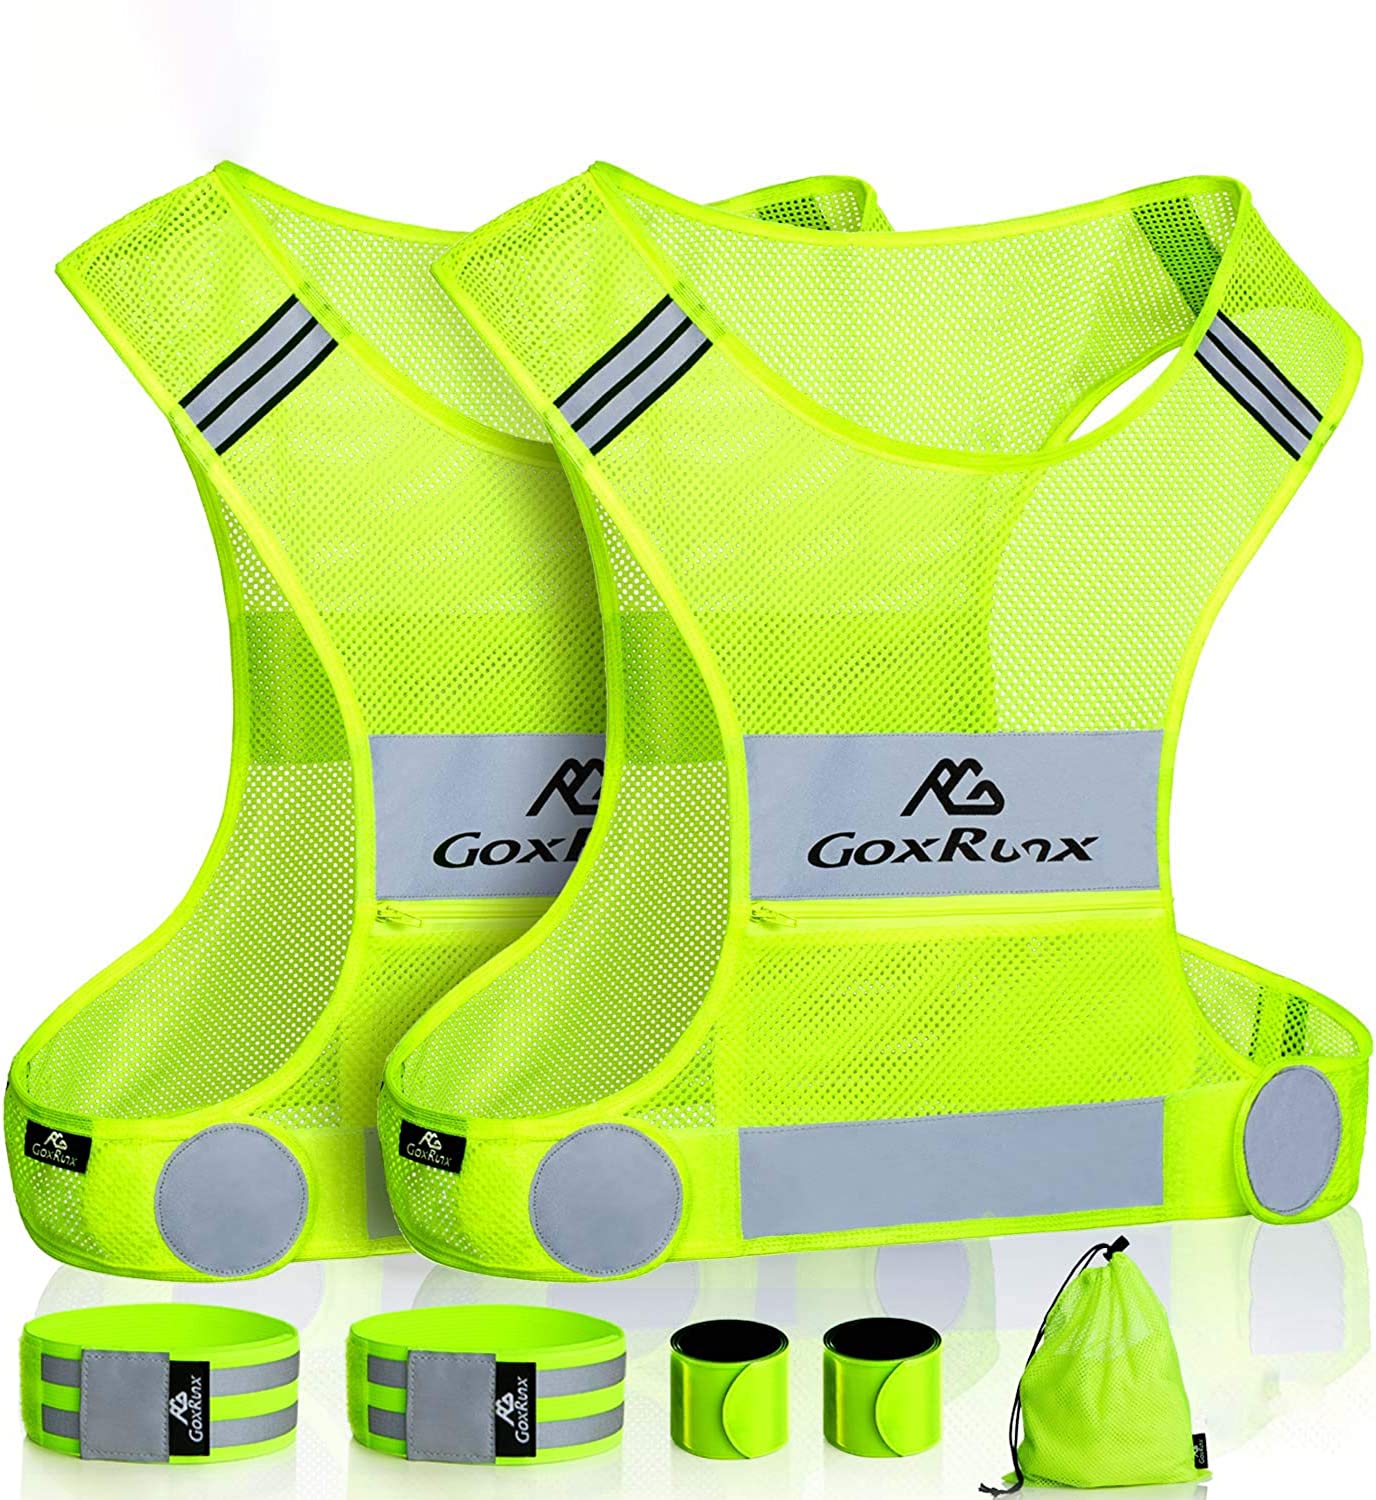 2 Pack Reflective Vest Running Gear Ultralight Runner Safety Vest+Armbands & Bag